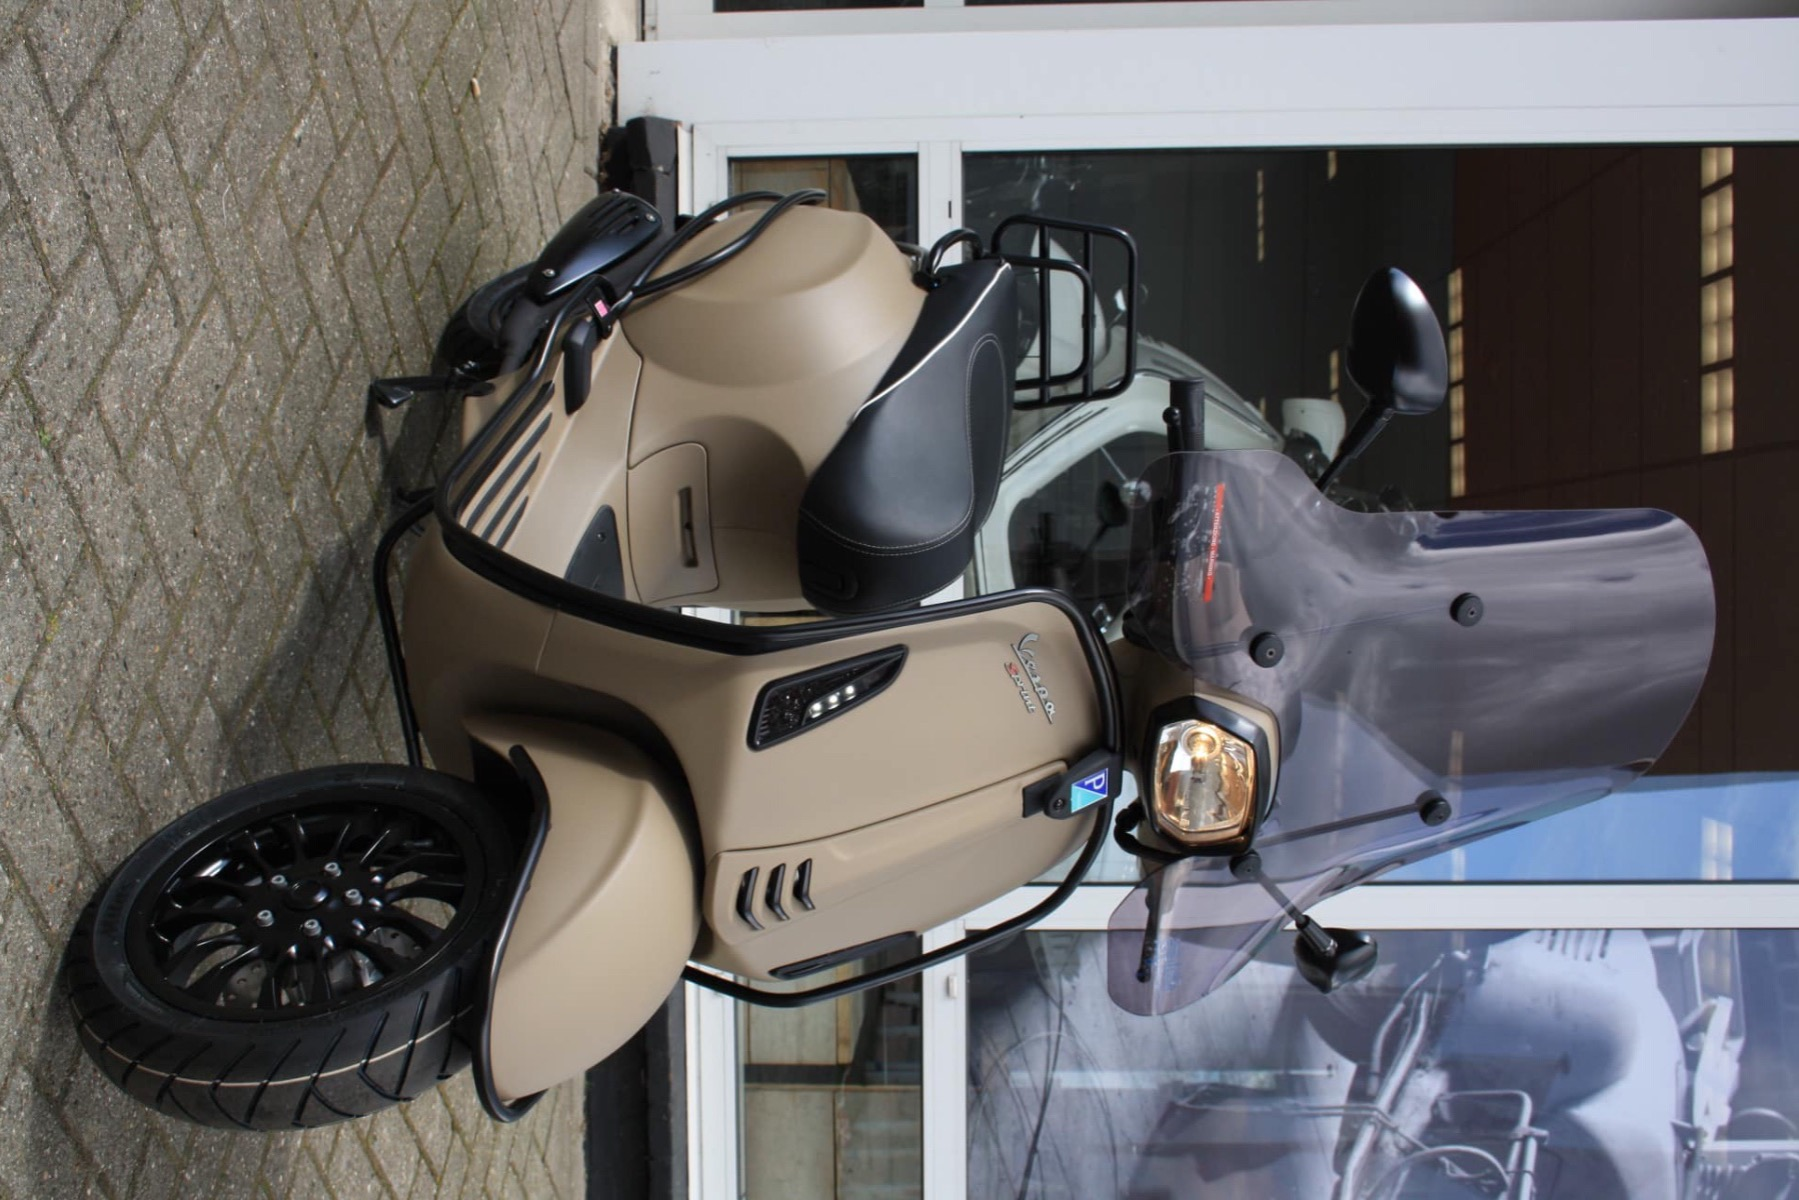 Why not get a scooter